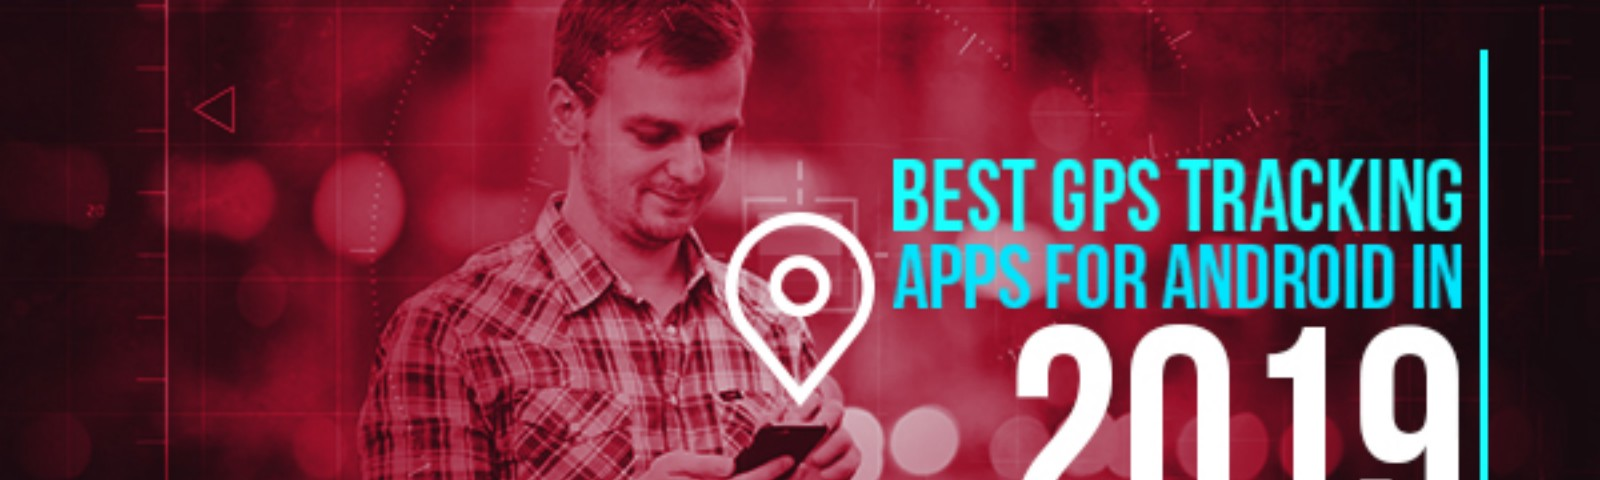 24 Best GPS Tracking Apps For Android   Redbytes Software